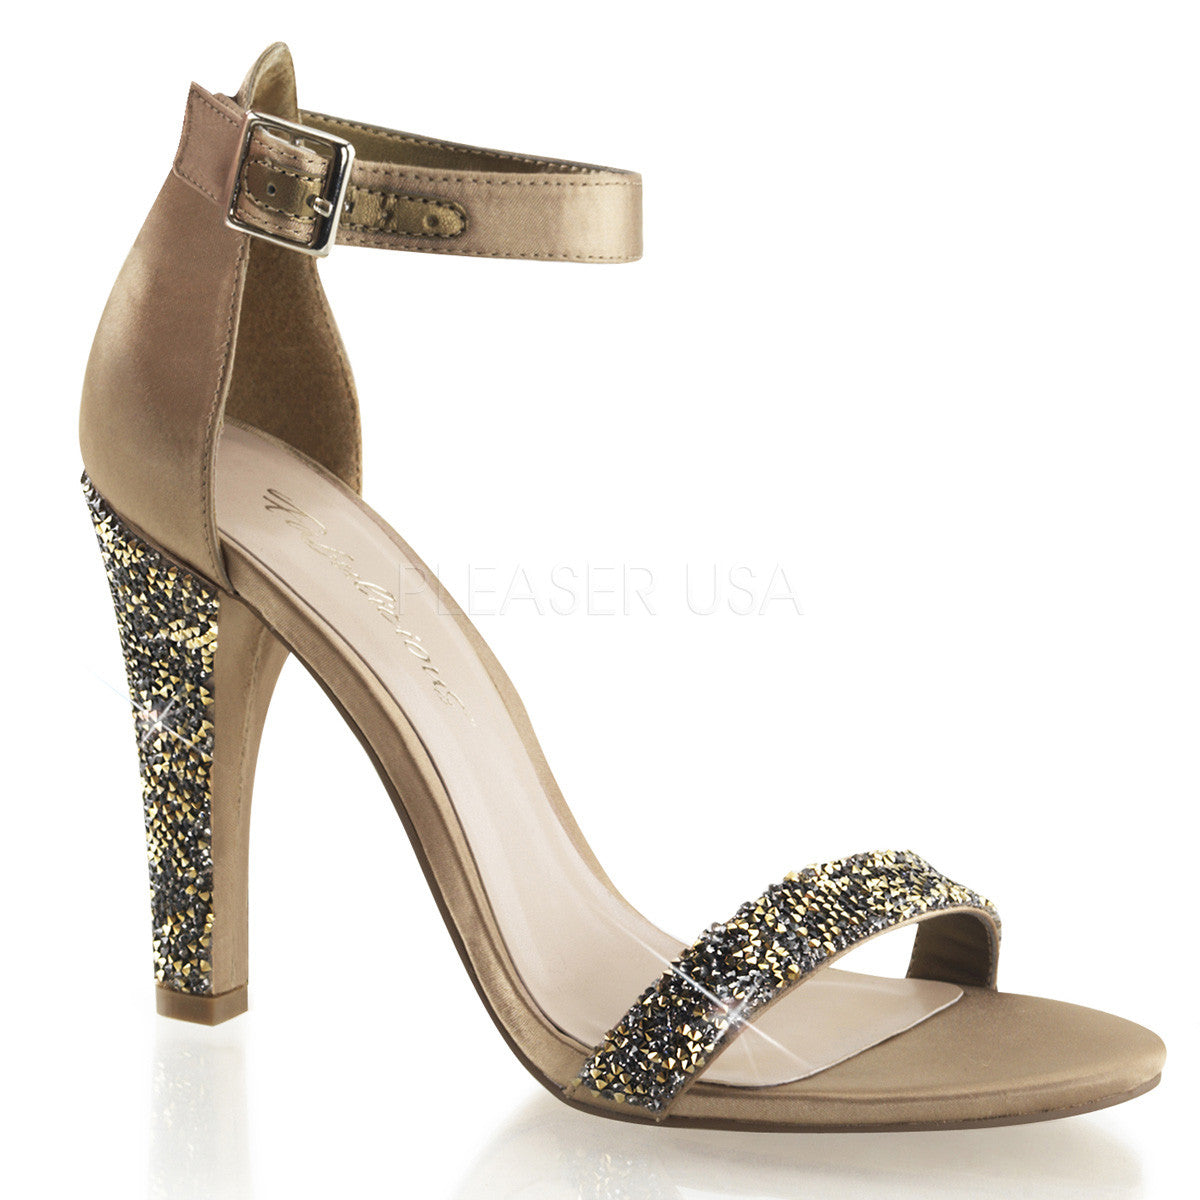 Fabulicious,FABULICIOUS CLEARLY-436 Bronze Satin Ankle Strap Sandals - Shoecup.com